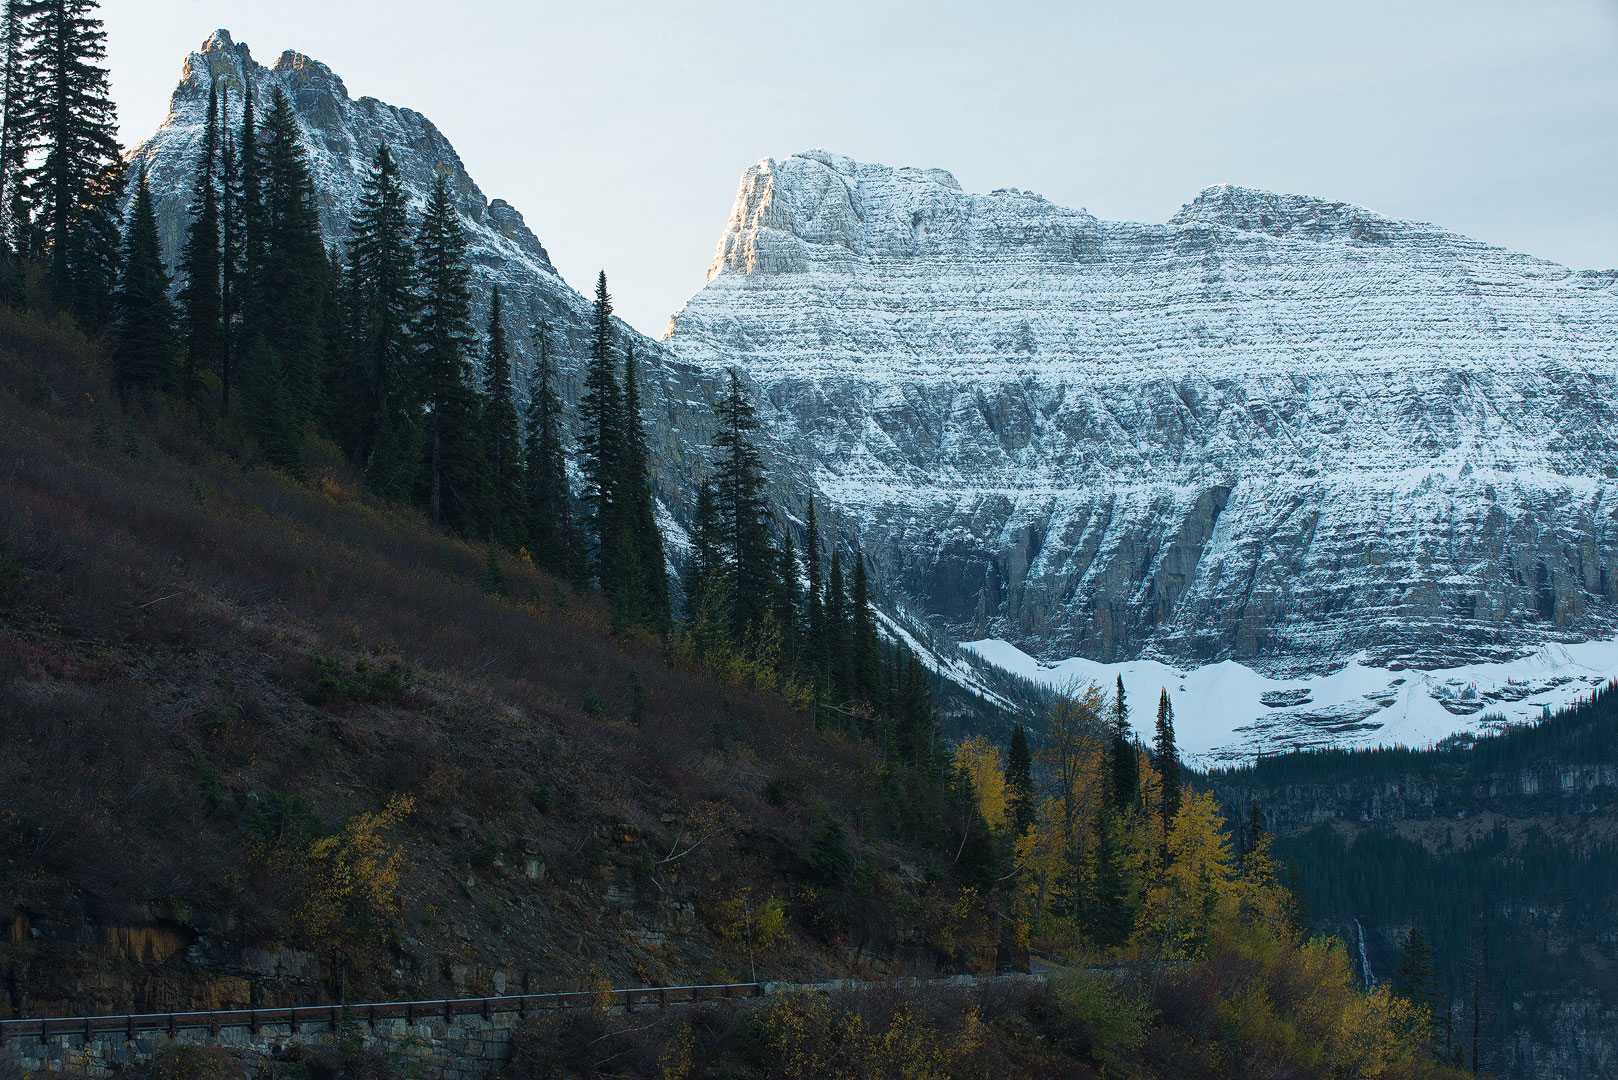 Glacier National Park, Montana, Bernard Chen, Horizontal, Outdoors, Day, Nature, Tranquility, Scenics, Tranquil Scene, Beauty In Nature, Non Urban Scene, Environment, Standing, Side View, Full Length,, photo